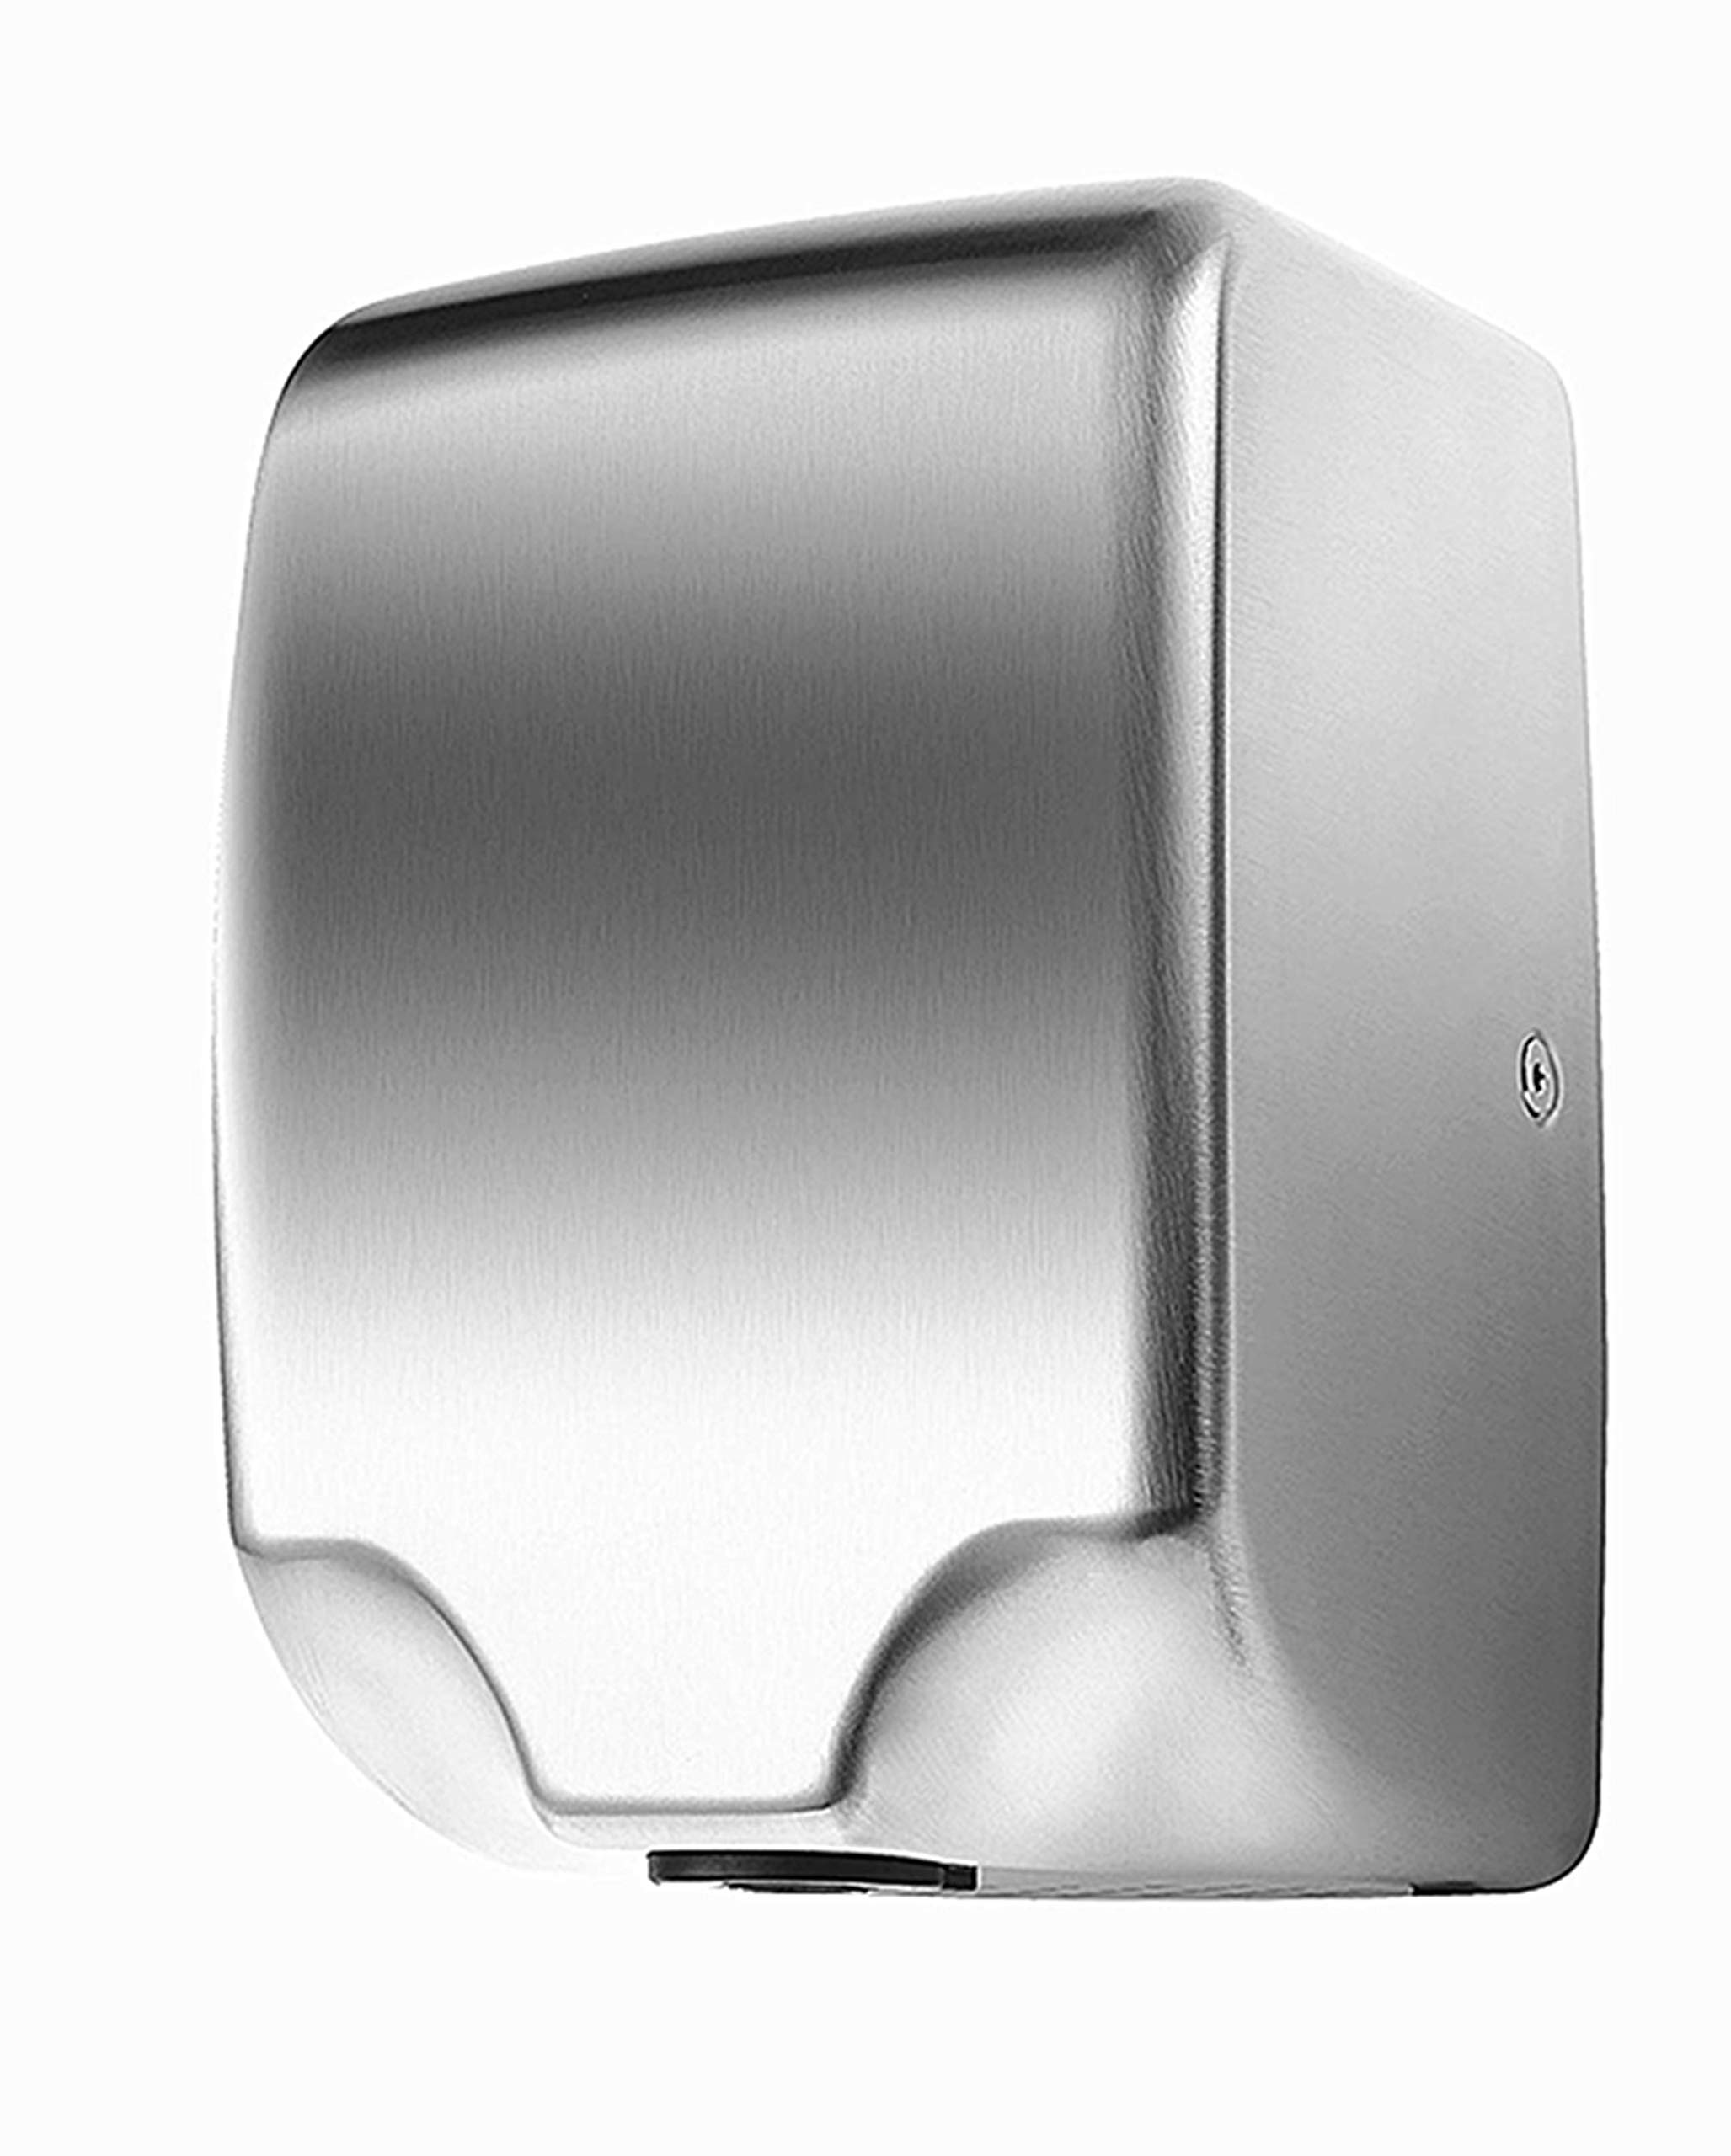 110V/1350W Commercial Electric Hand Dryer For bathrooms,Automatic Sensor,High Speed With Low Noise 70db,Hot/Cold Air,Brushed Stainless Steel 304 Cover,Innovative Compact Design, Easy Installation